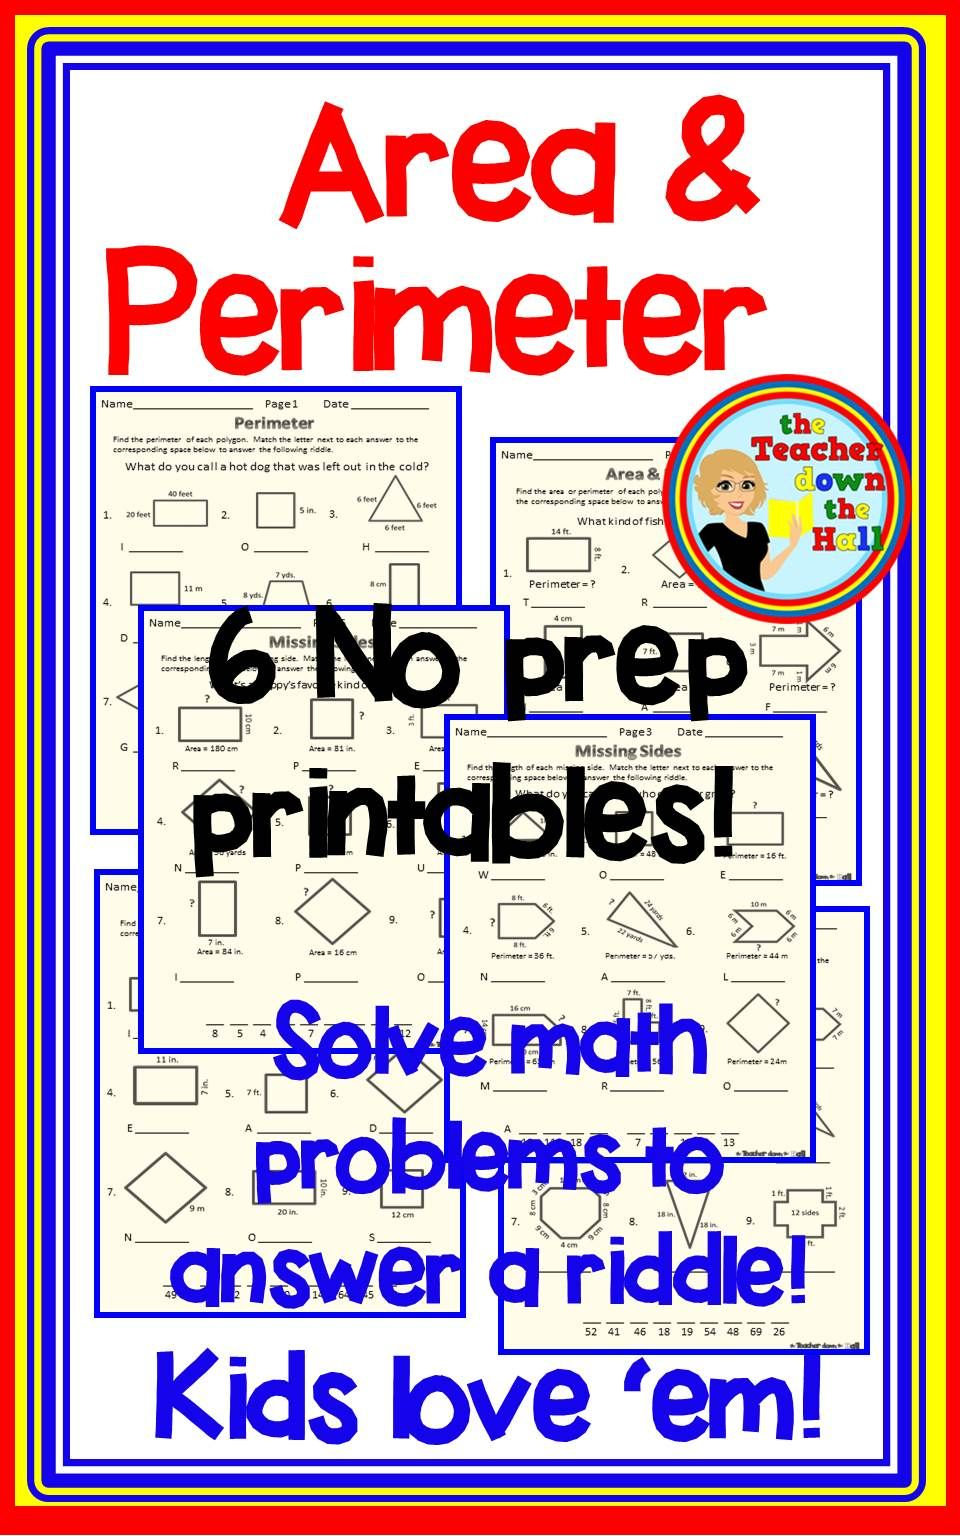 6 Worksheets To Review Area Perimeter And Missing Sides All Have A Riddle That Correct Answers Will Help Area And Perimeter Elementary Math Classroom Math [ 1536 x 960 Pixel ]